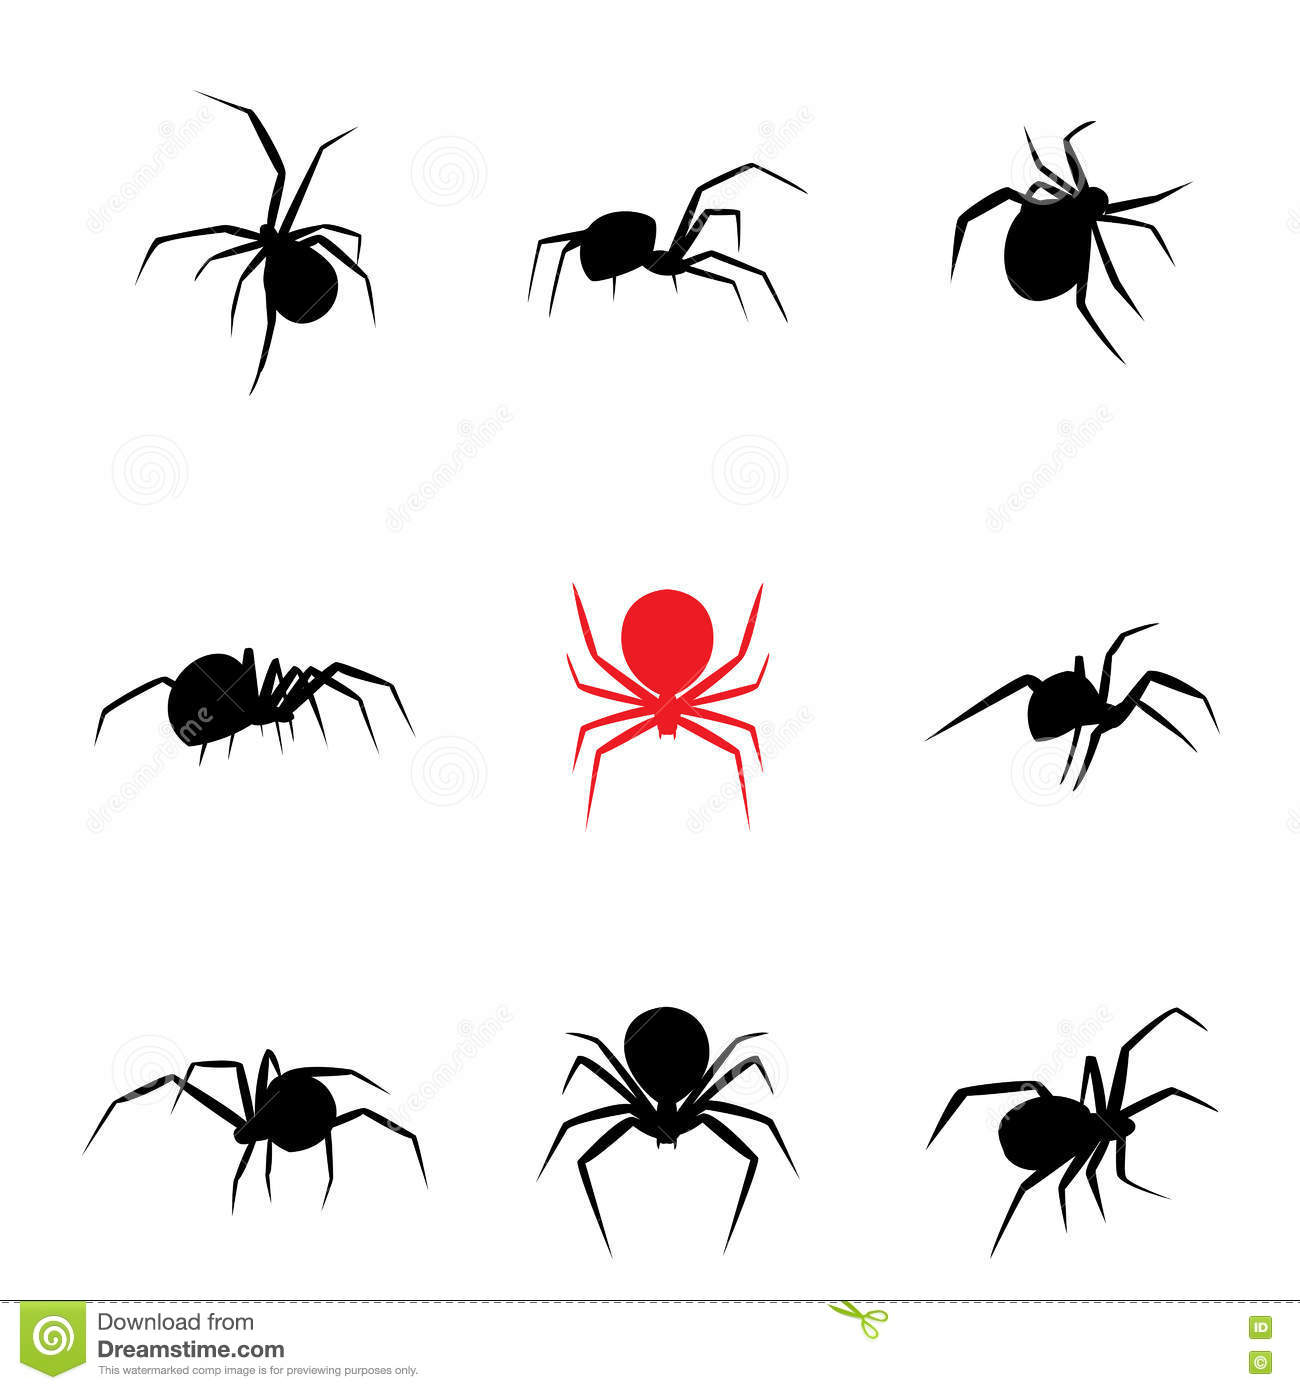 black widow spider silhouette - photo #21